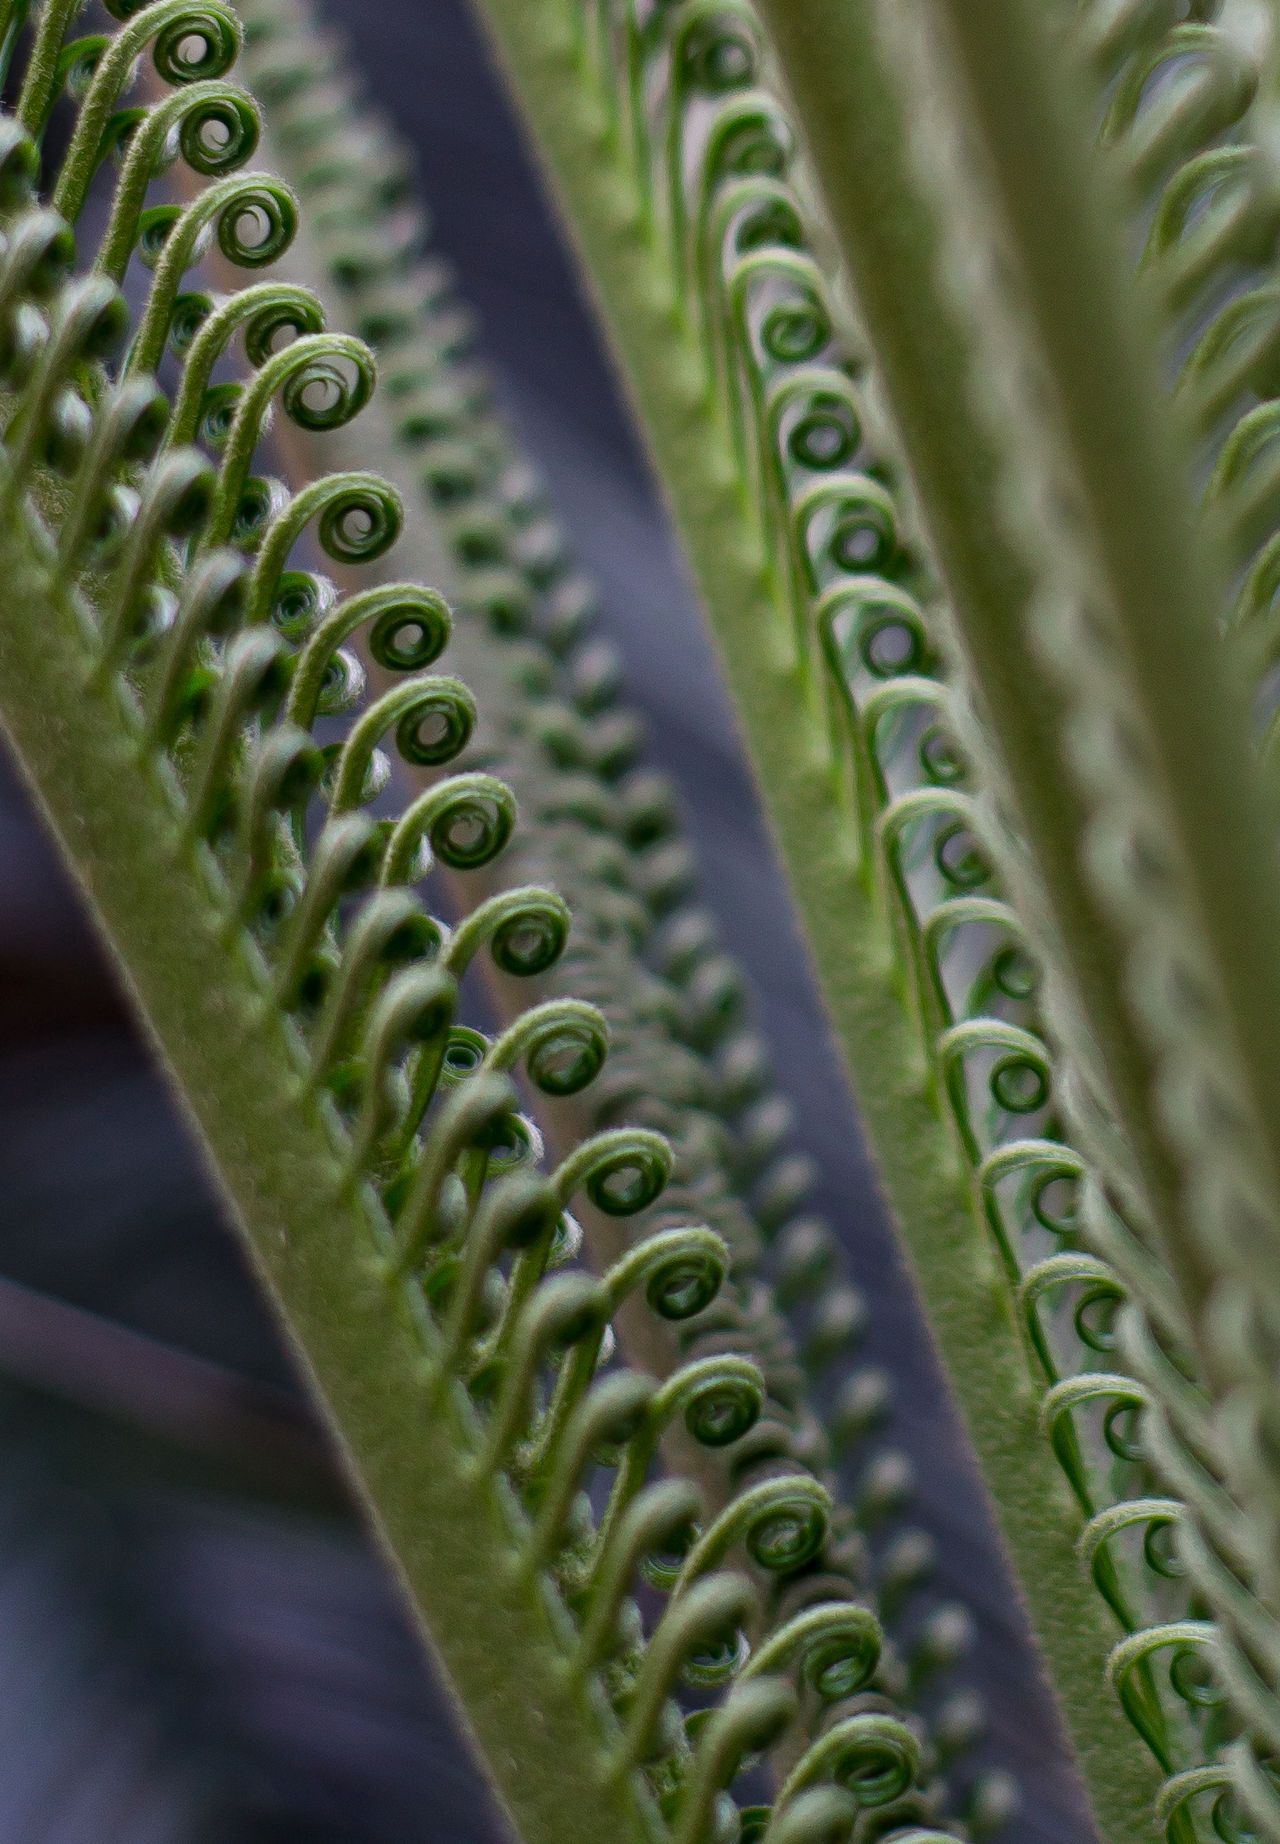 Beauty In Nature Calming China Close-up Depth Of Field Fern Fern Leaf Unfurling Flower Green Color Happy No People Perspective Selective Focus Symmetrical Zhuhai